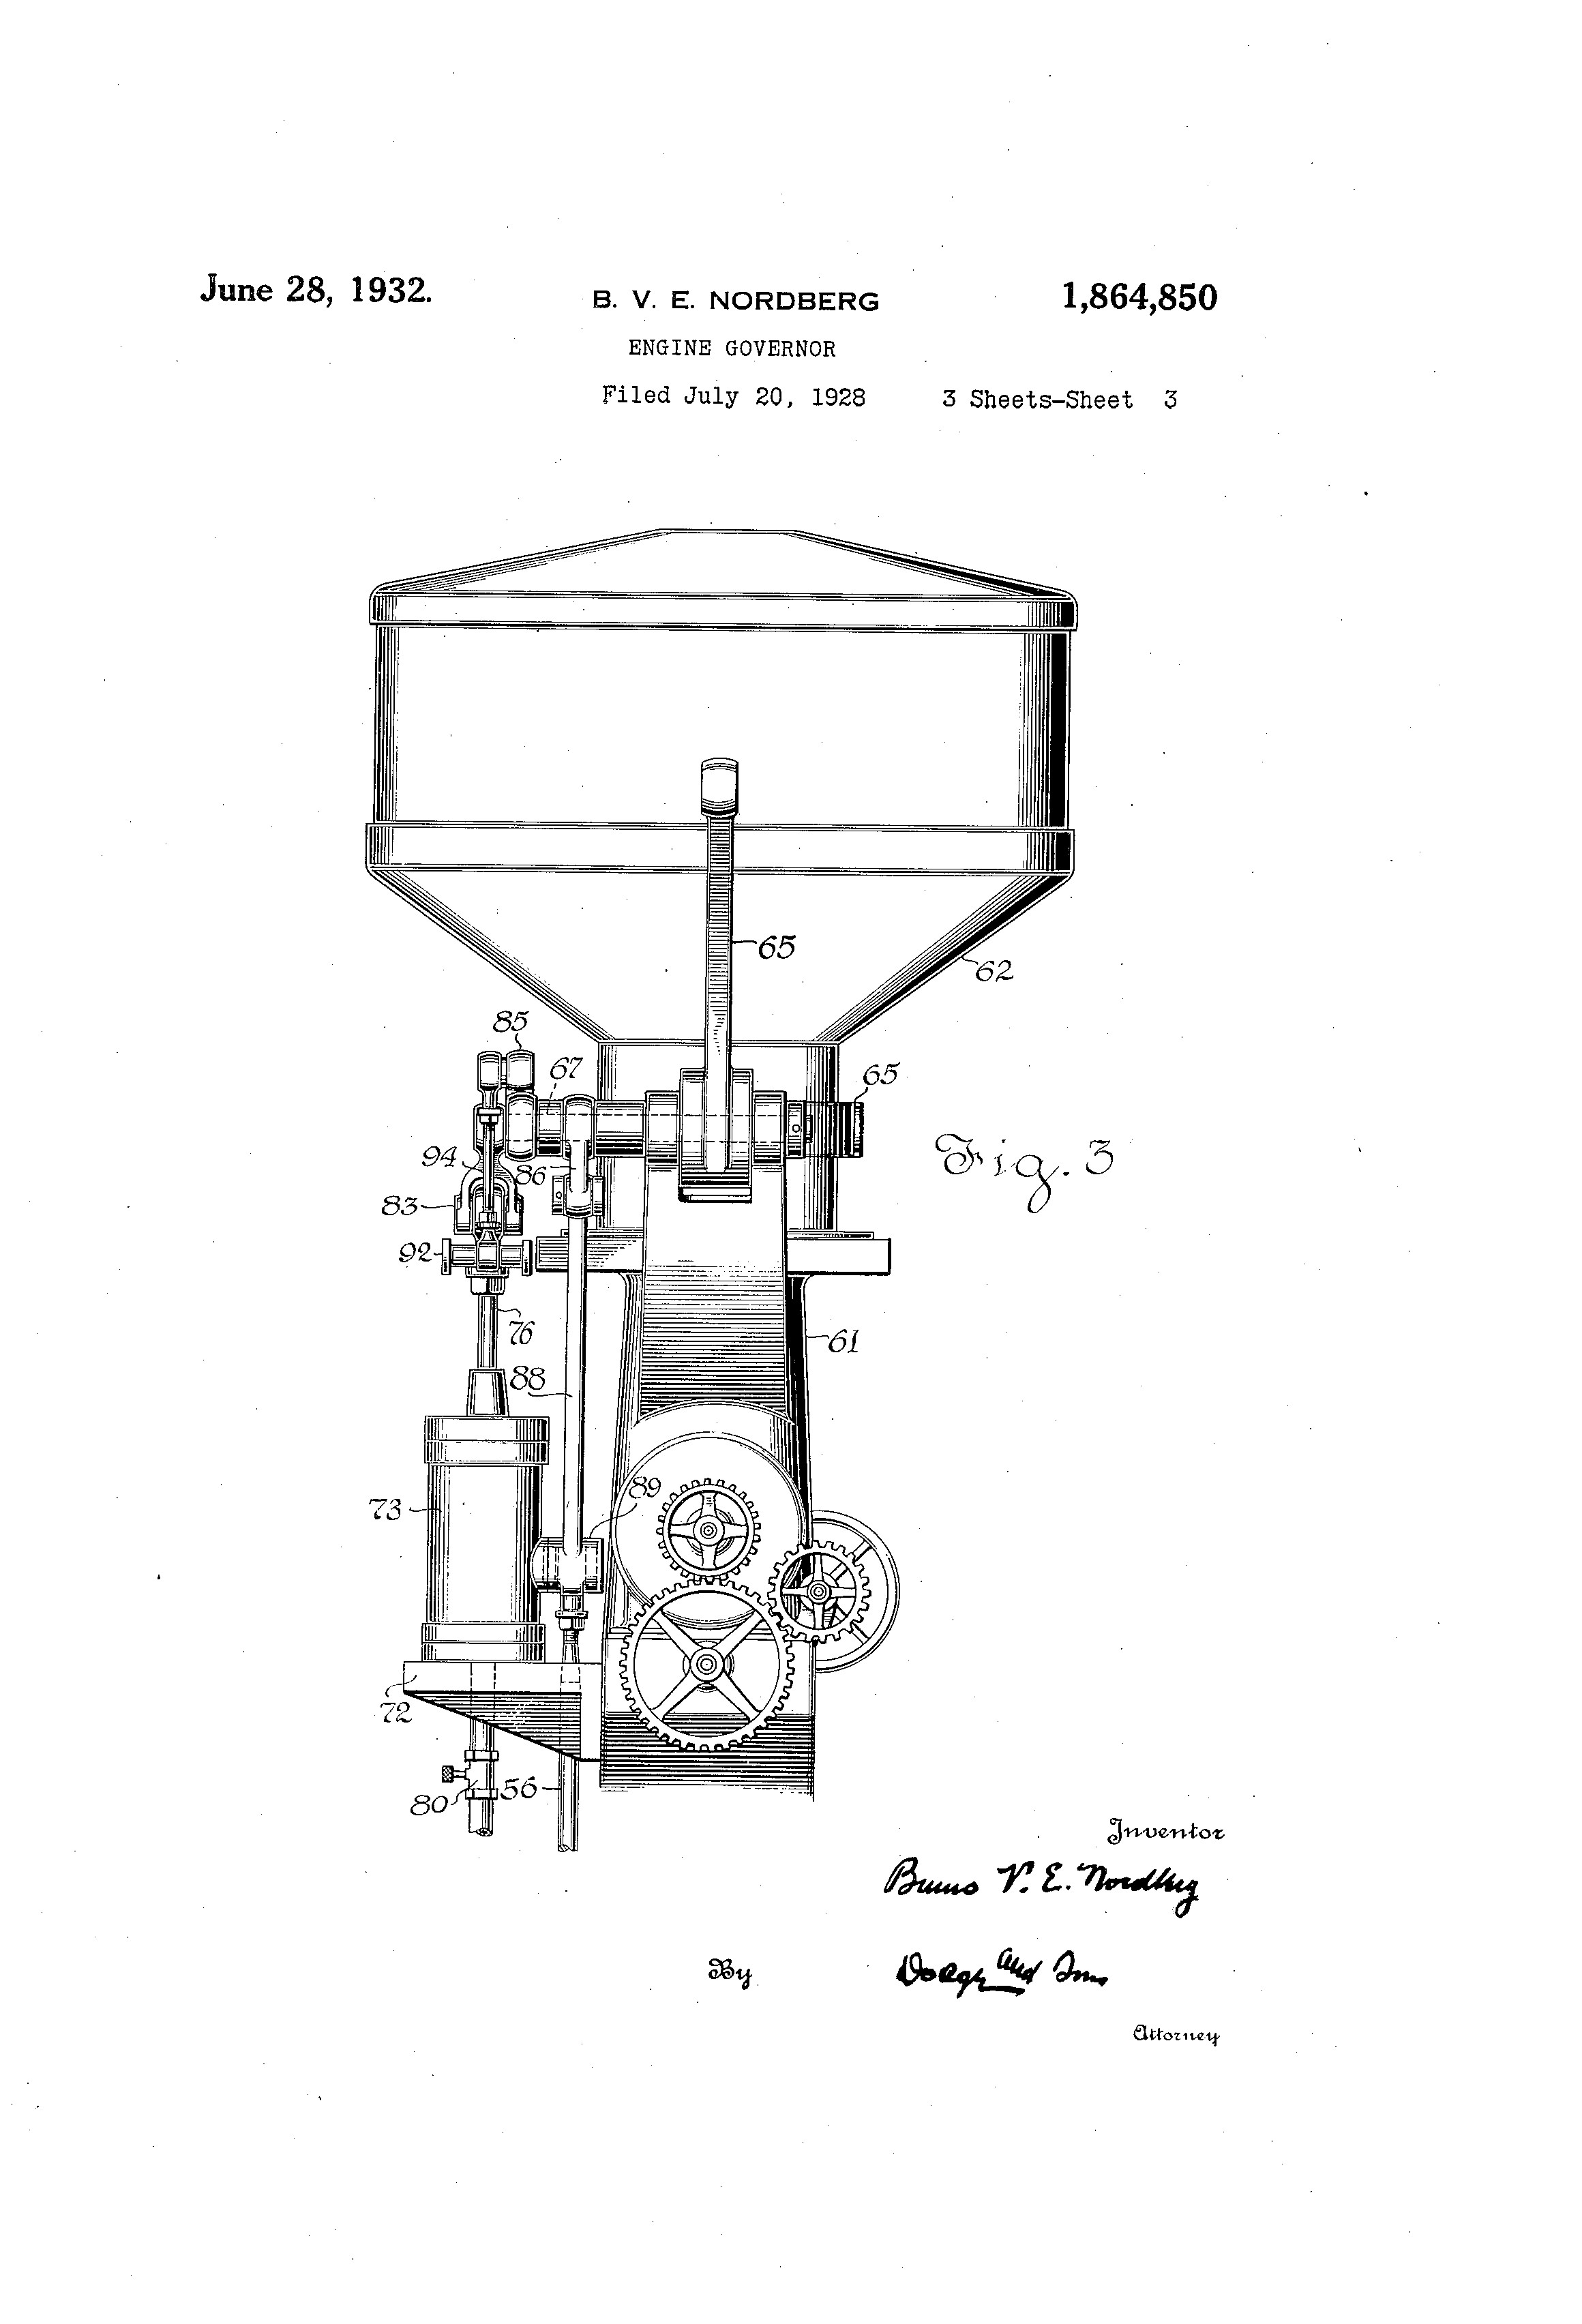 Harley Engine Diagram Patent Us Engine Governor Google Patents Of Harley Engine Diagram